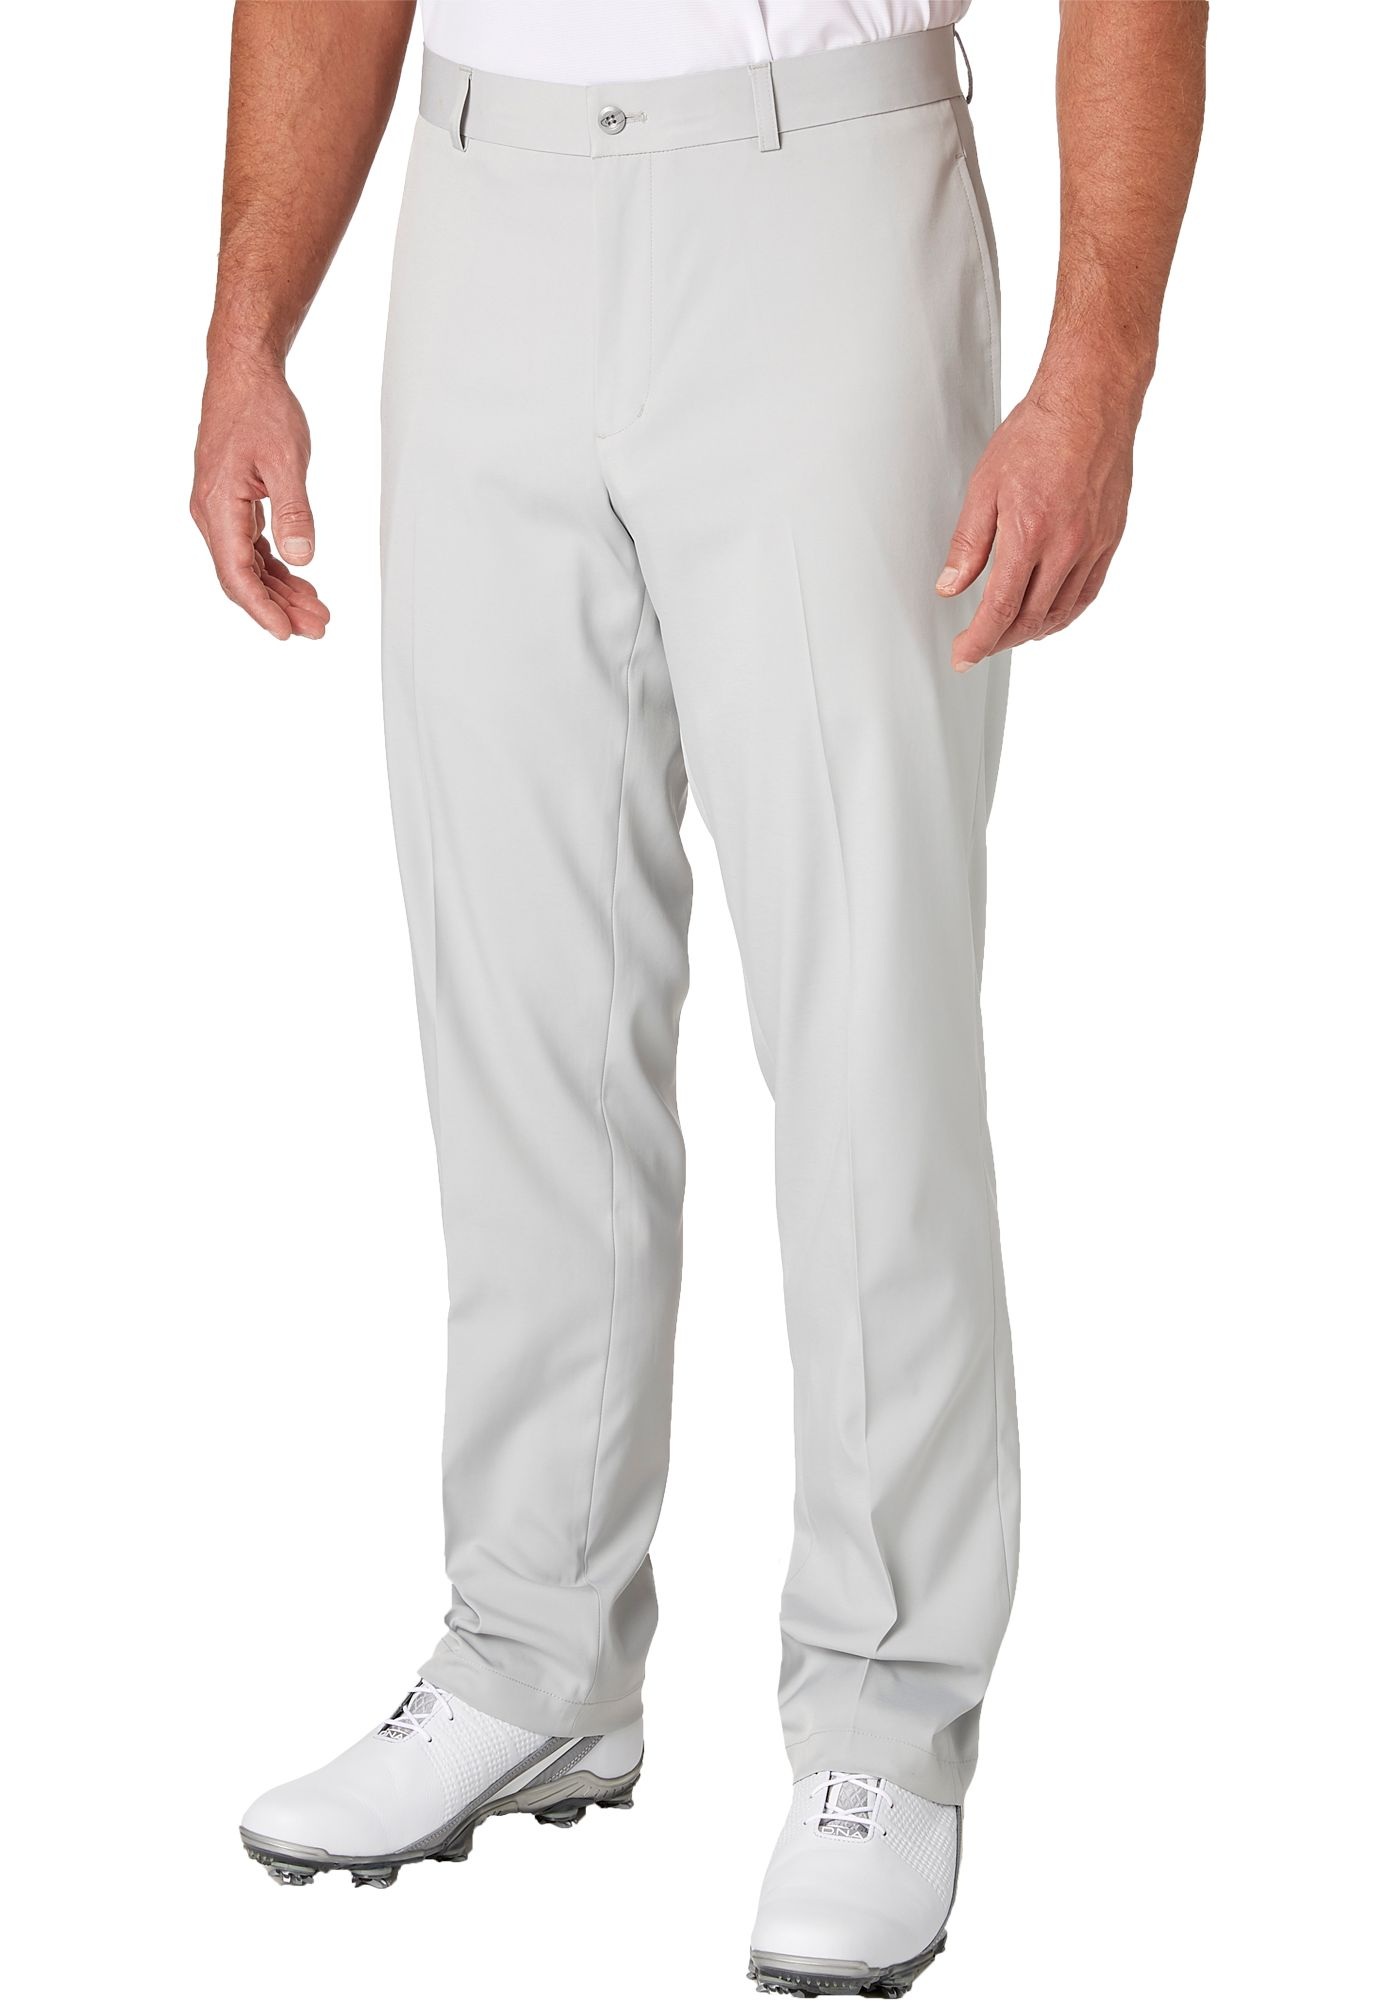 Slazenger Men's Core Golf Pants